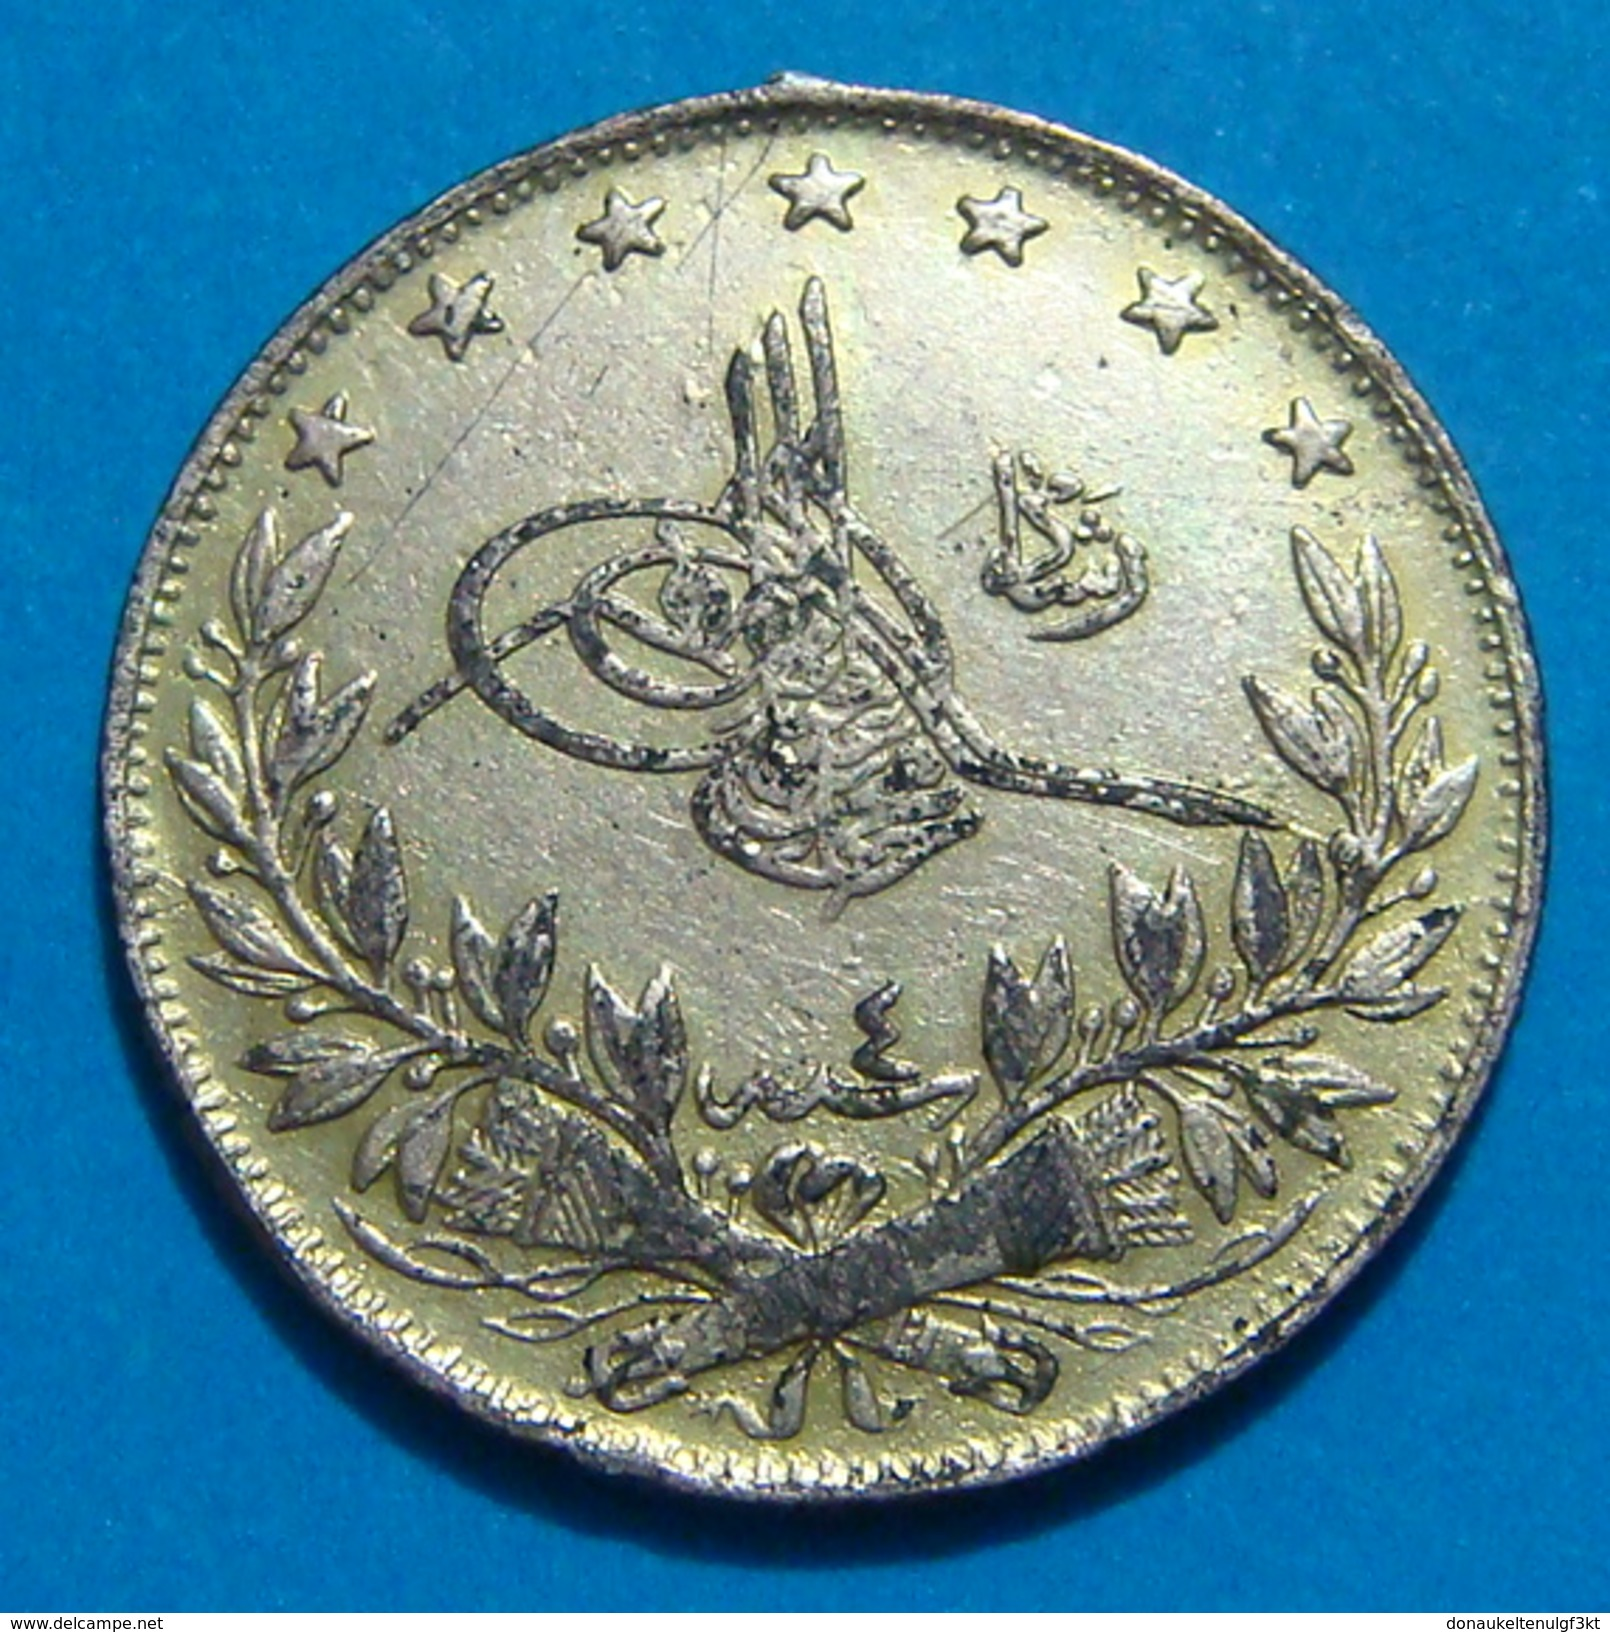 TURKEY OTTOMAN 100 PIASTRES 1327 Year 4, OFFICIAL RESTRIKE OR PROBE, VERY RARE OR UNIQUE, 5.59 Gr. - Turquie